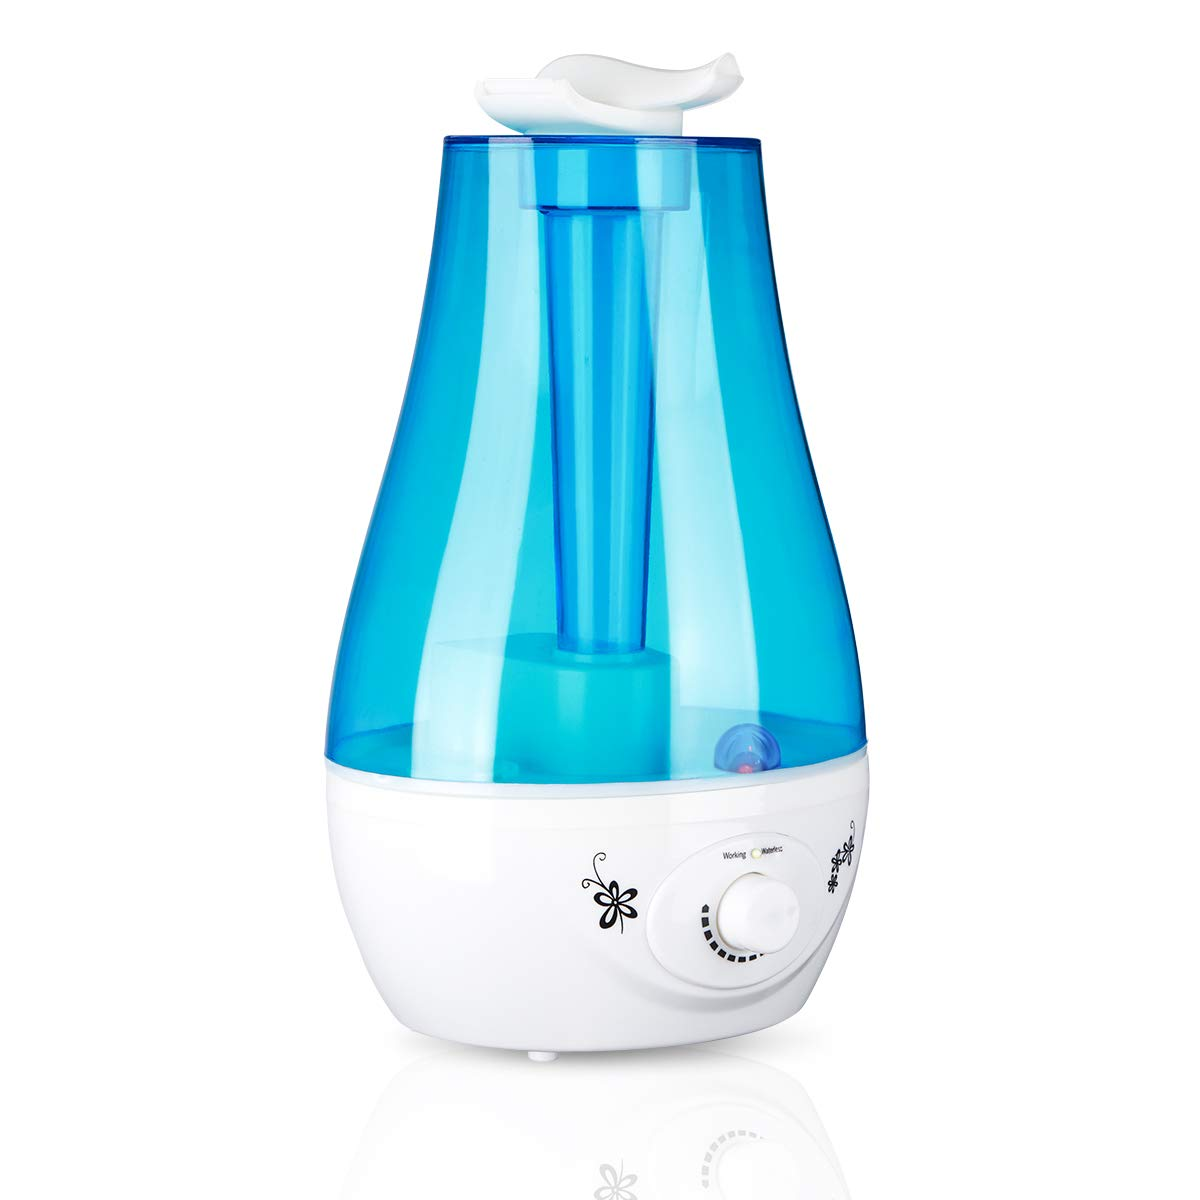 Cool Mist Humidifier, 360 Degree Rotary Ultrasonic Air Humidifier Diffuser Aromatherapy Water Mist Humidifier with Colorful LED Light 3L 250ml/h Cocoarm